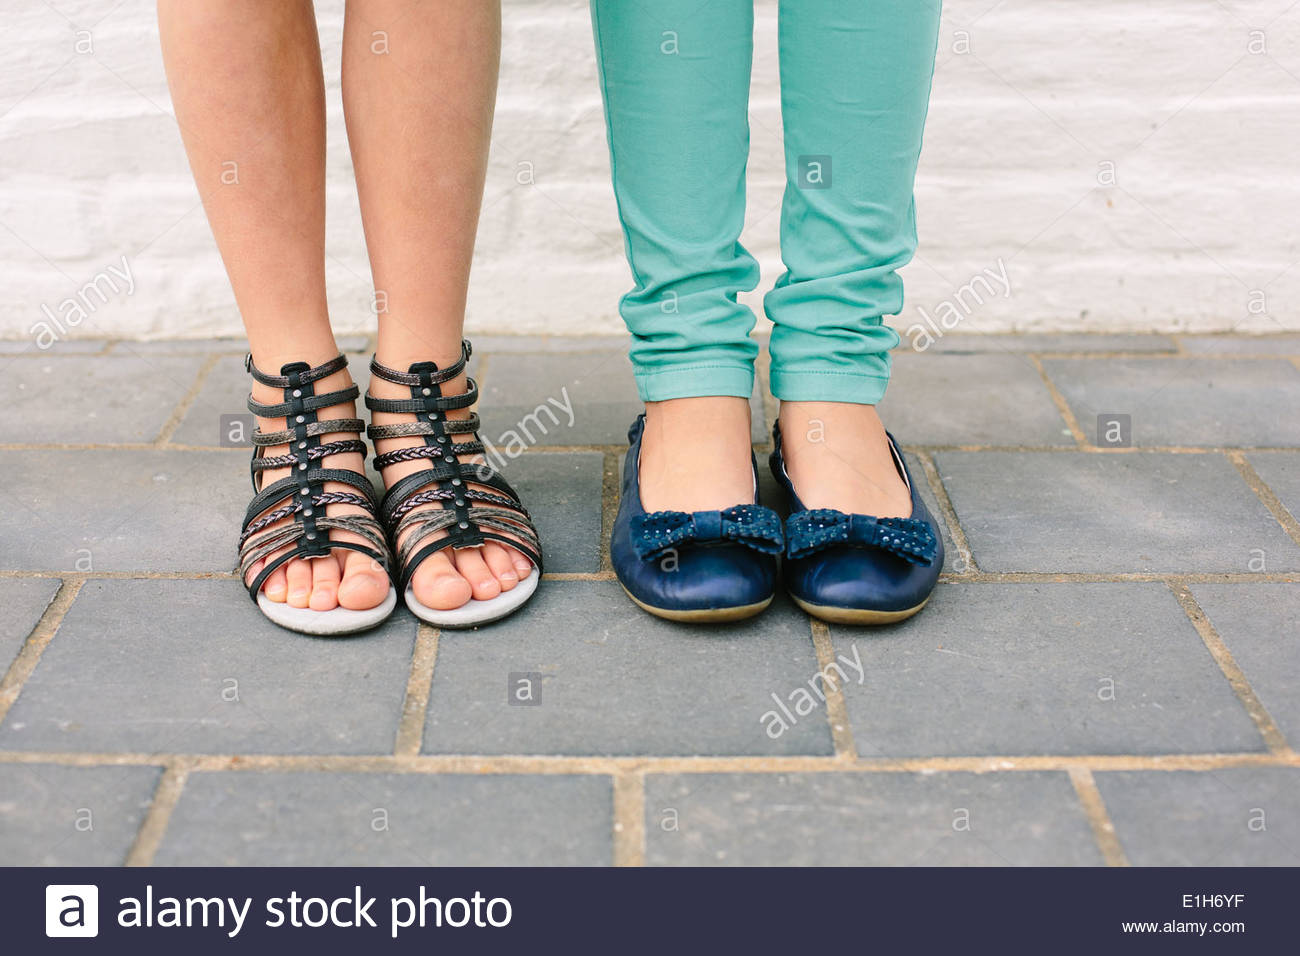 Close up of two sisters legs and footwear - Stock Image